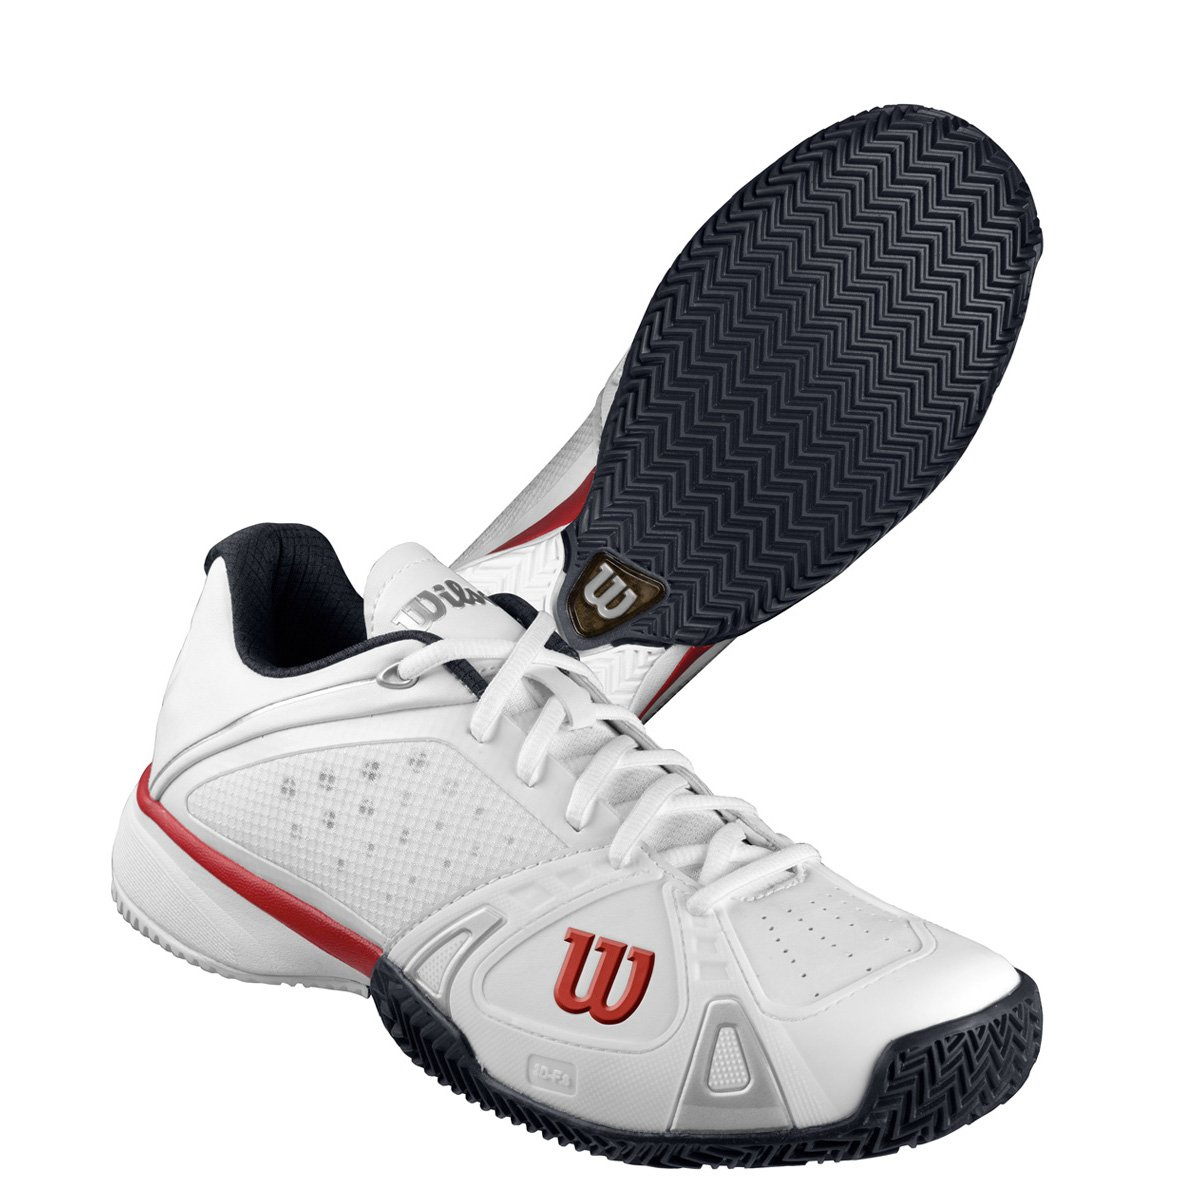 Wilson Rush Pro Men's Clay Court Tennis Shoes White/Red Size 8